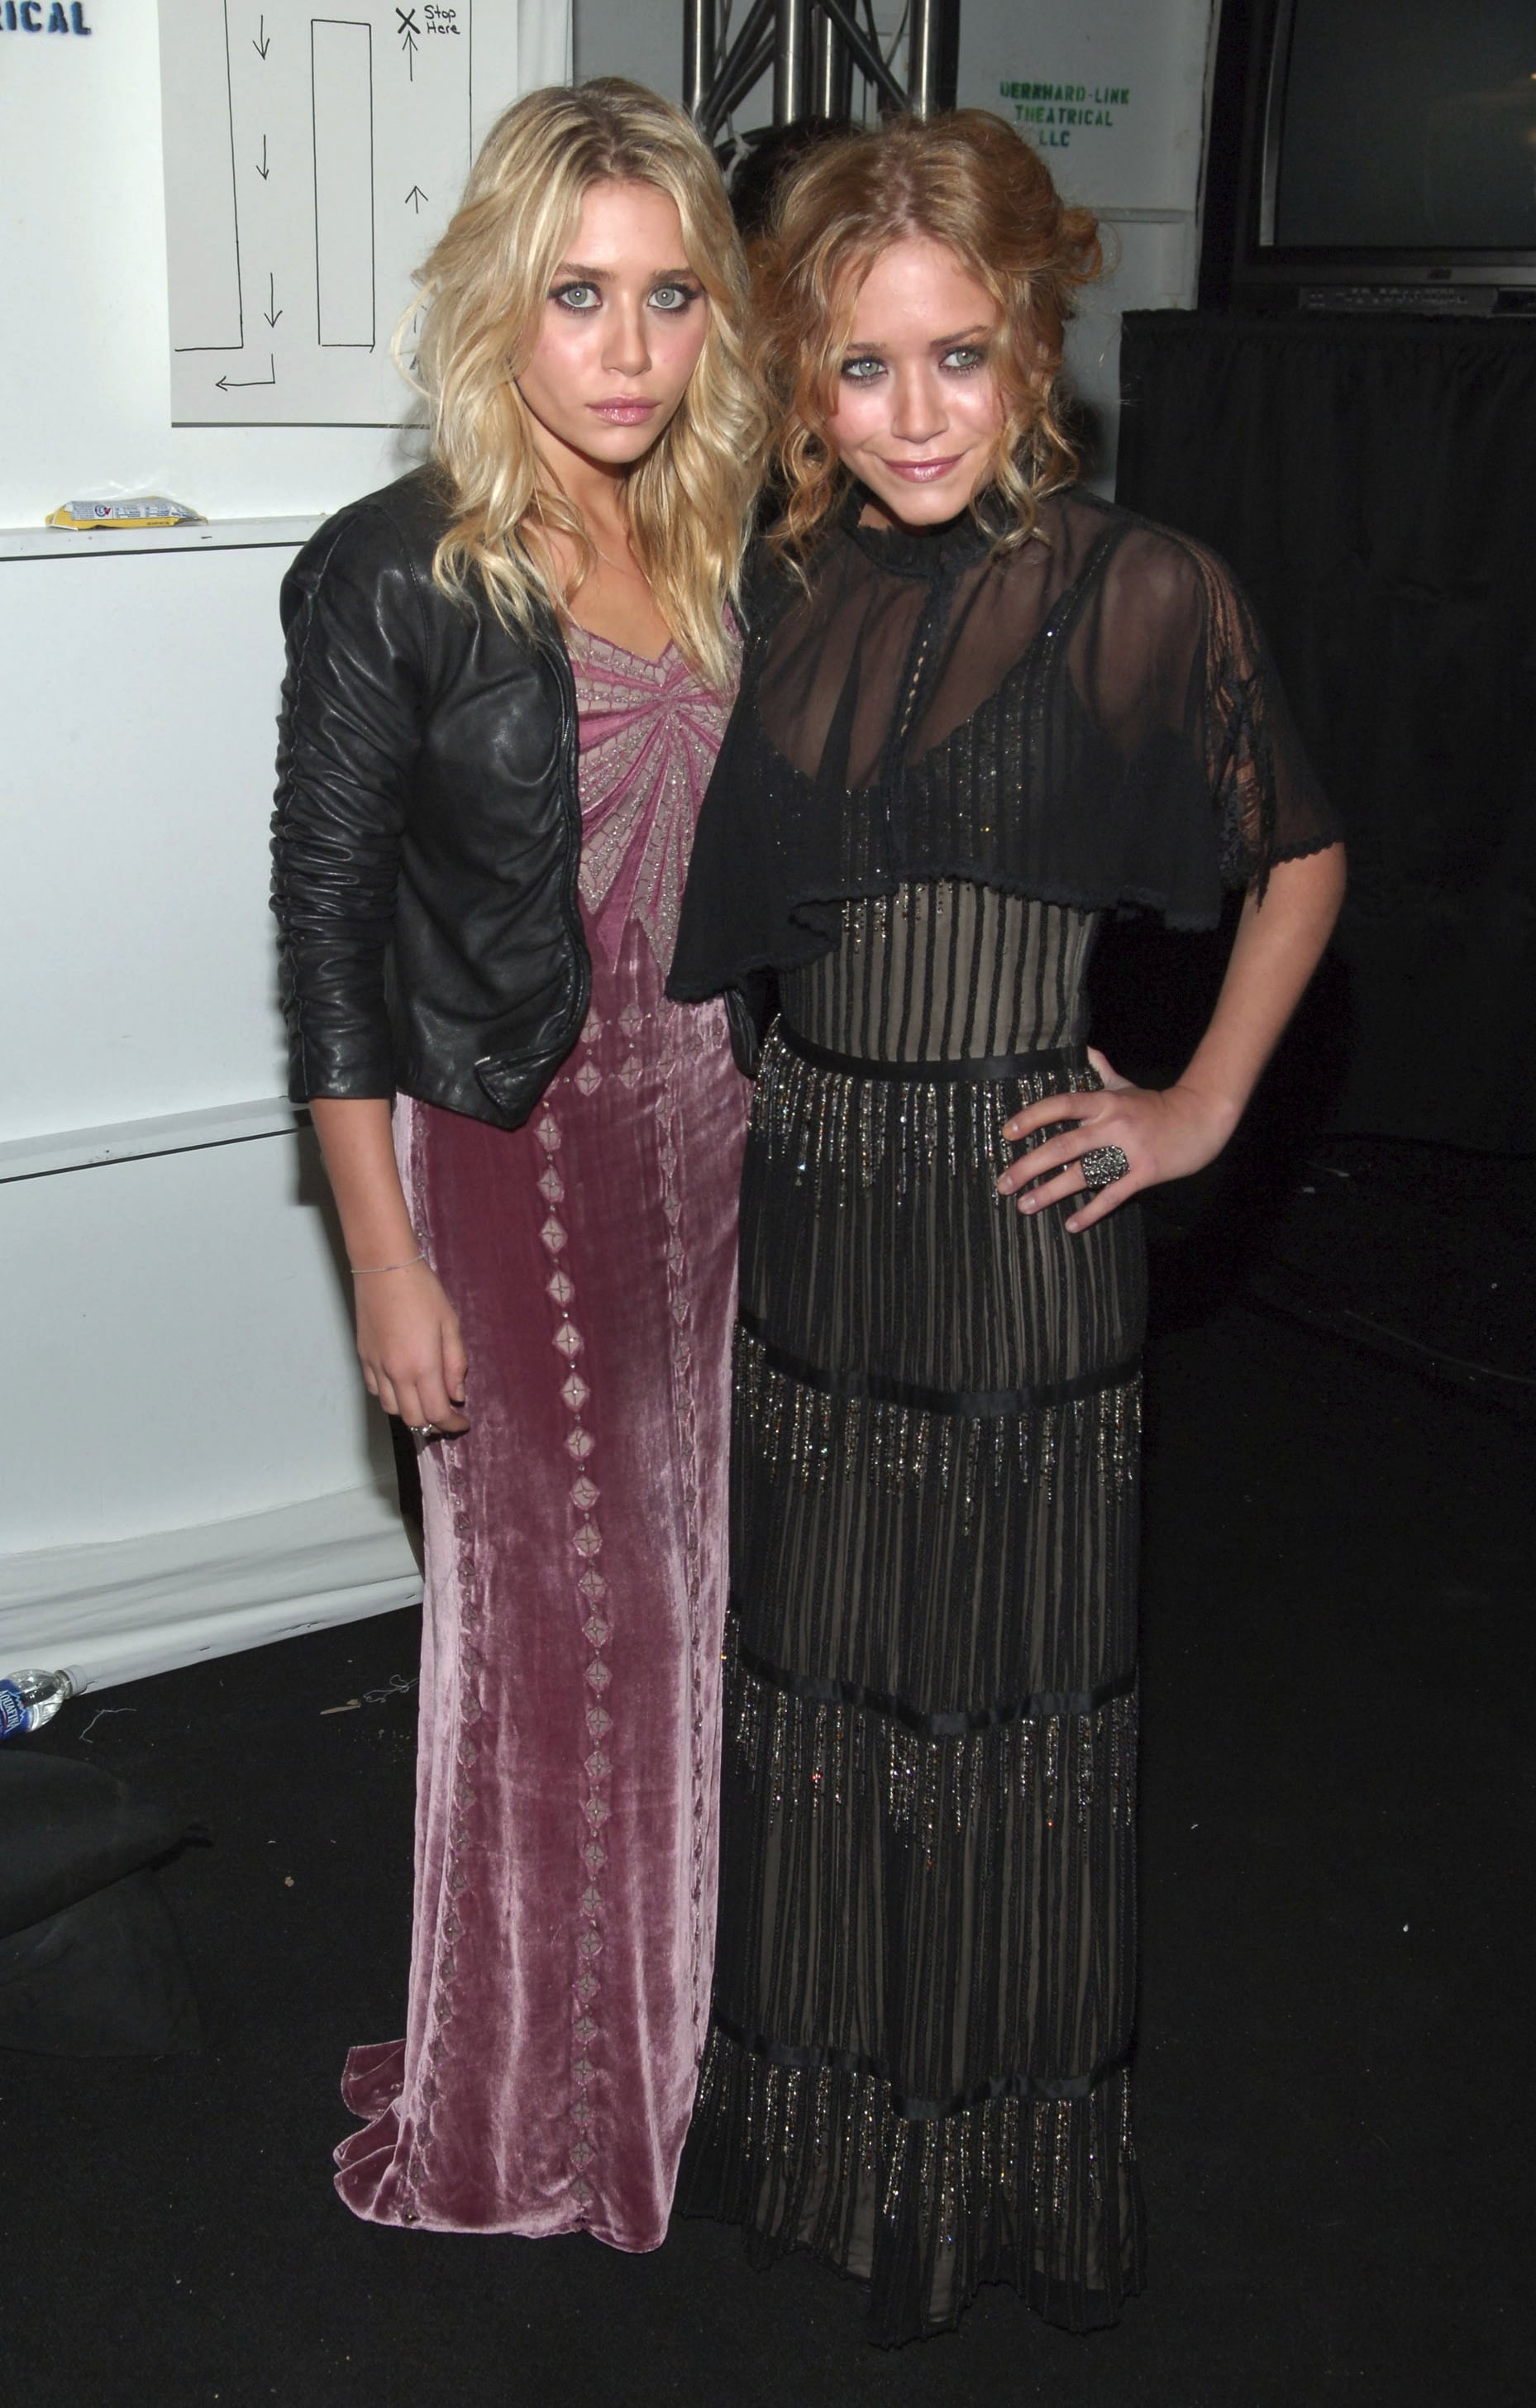 Twinning combo: During Fall 2006 NYFW season, the designing duo opted for decadent gowns and soft curls.  Ashley roughed up her blush velour gown, complete with sparkling bodice, with a cropped leather jacket. Mary-Kate's sheer, tiered, and bead-embellished gown was absolutely stunning.